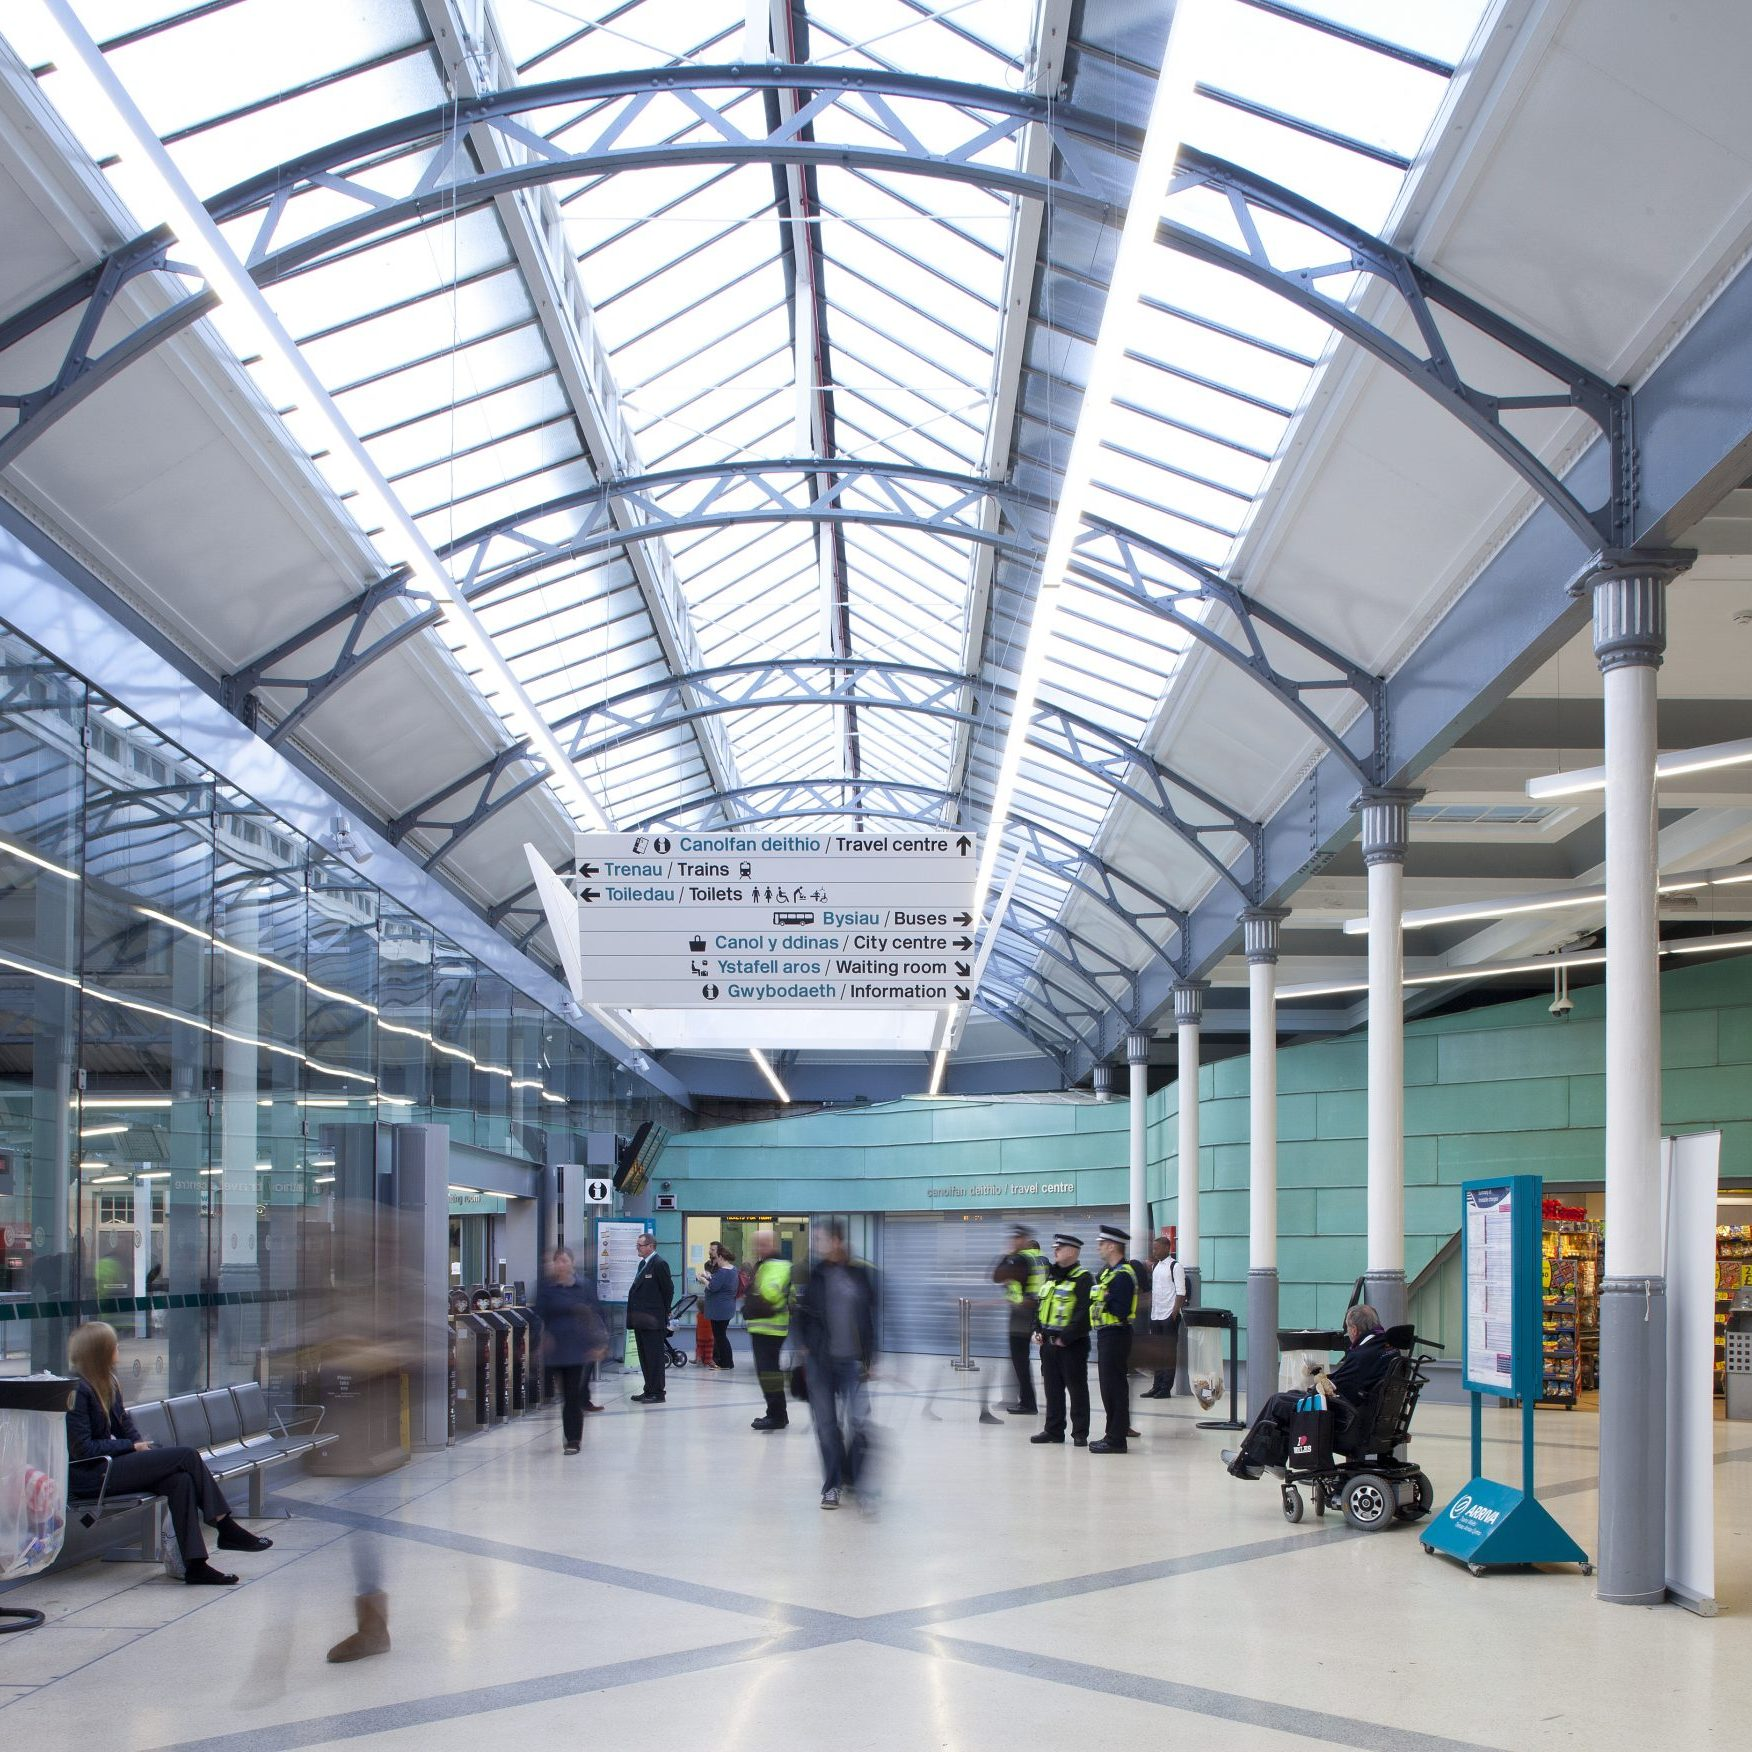 inside a train station with high arched ceilings with skylight and aqua wall cladding